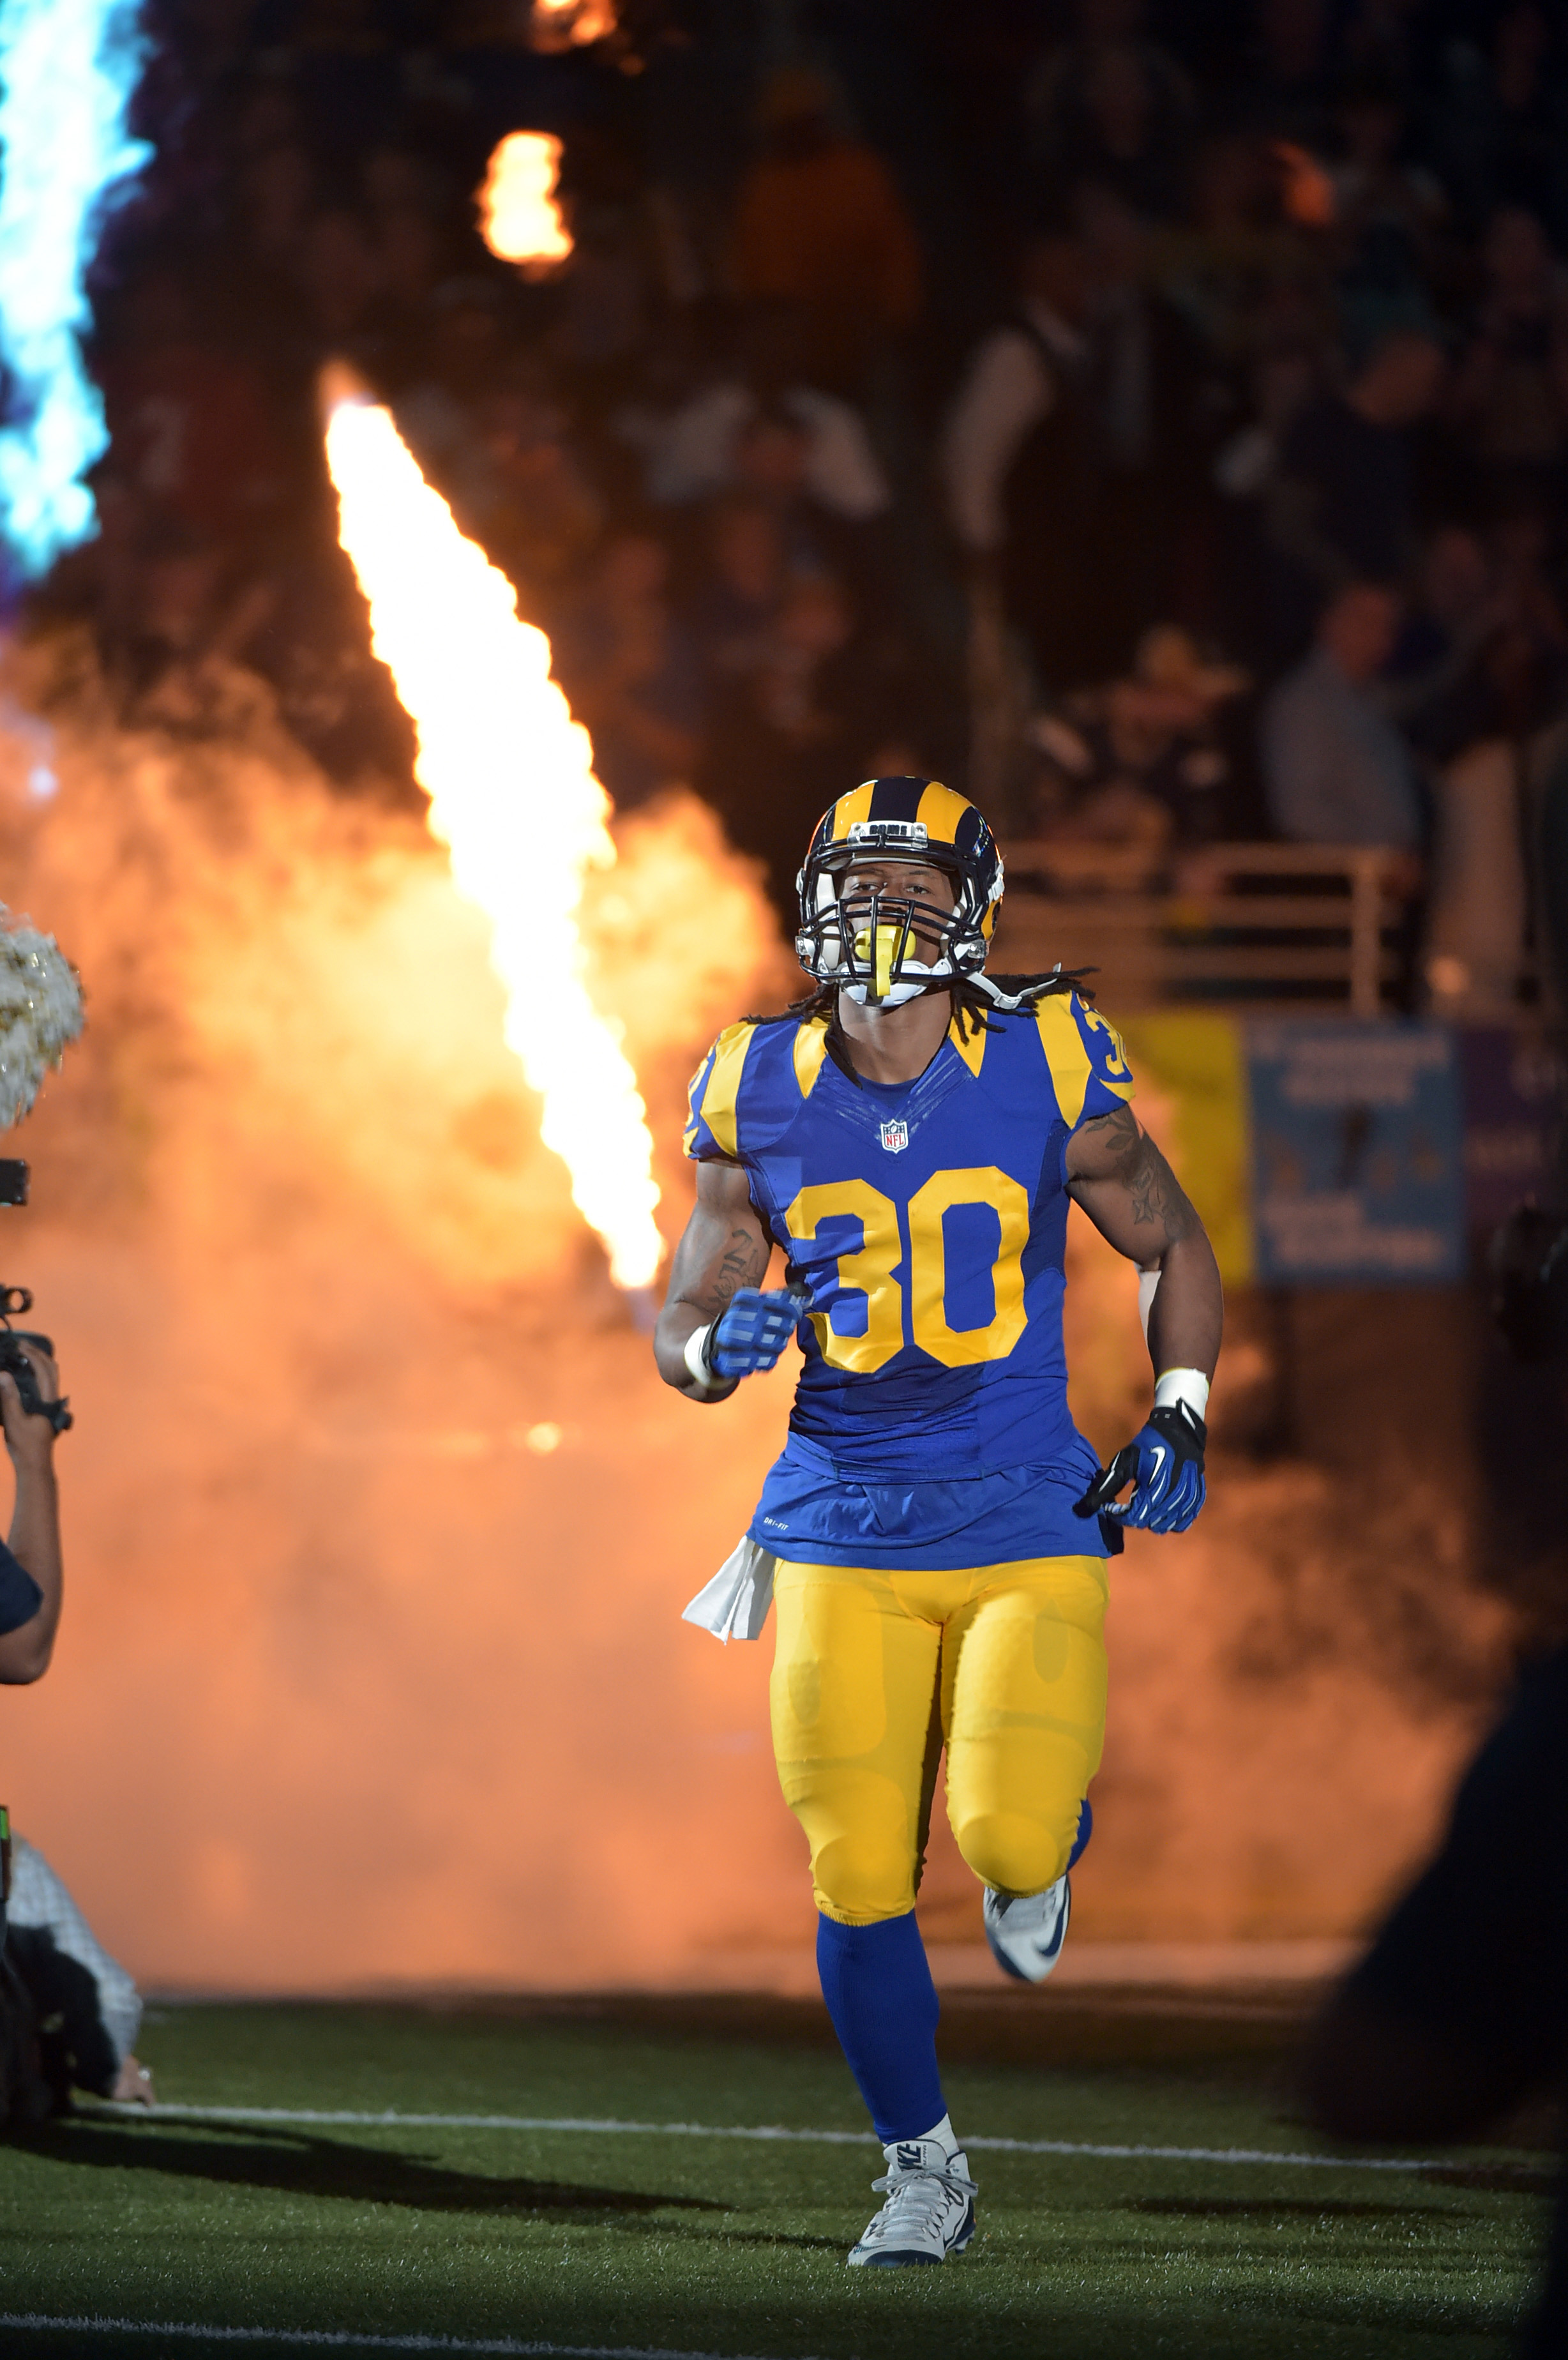 Los Angeles Rams RB Todd Gurley is a top-flight RB1 in Week 1 against the 49ers on Monday Night Football